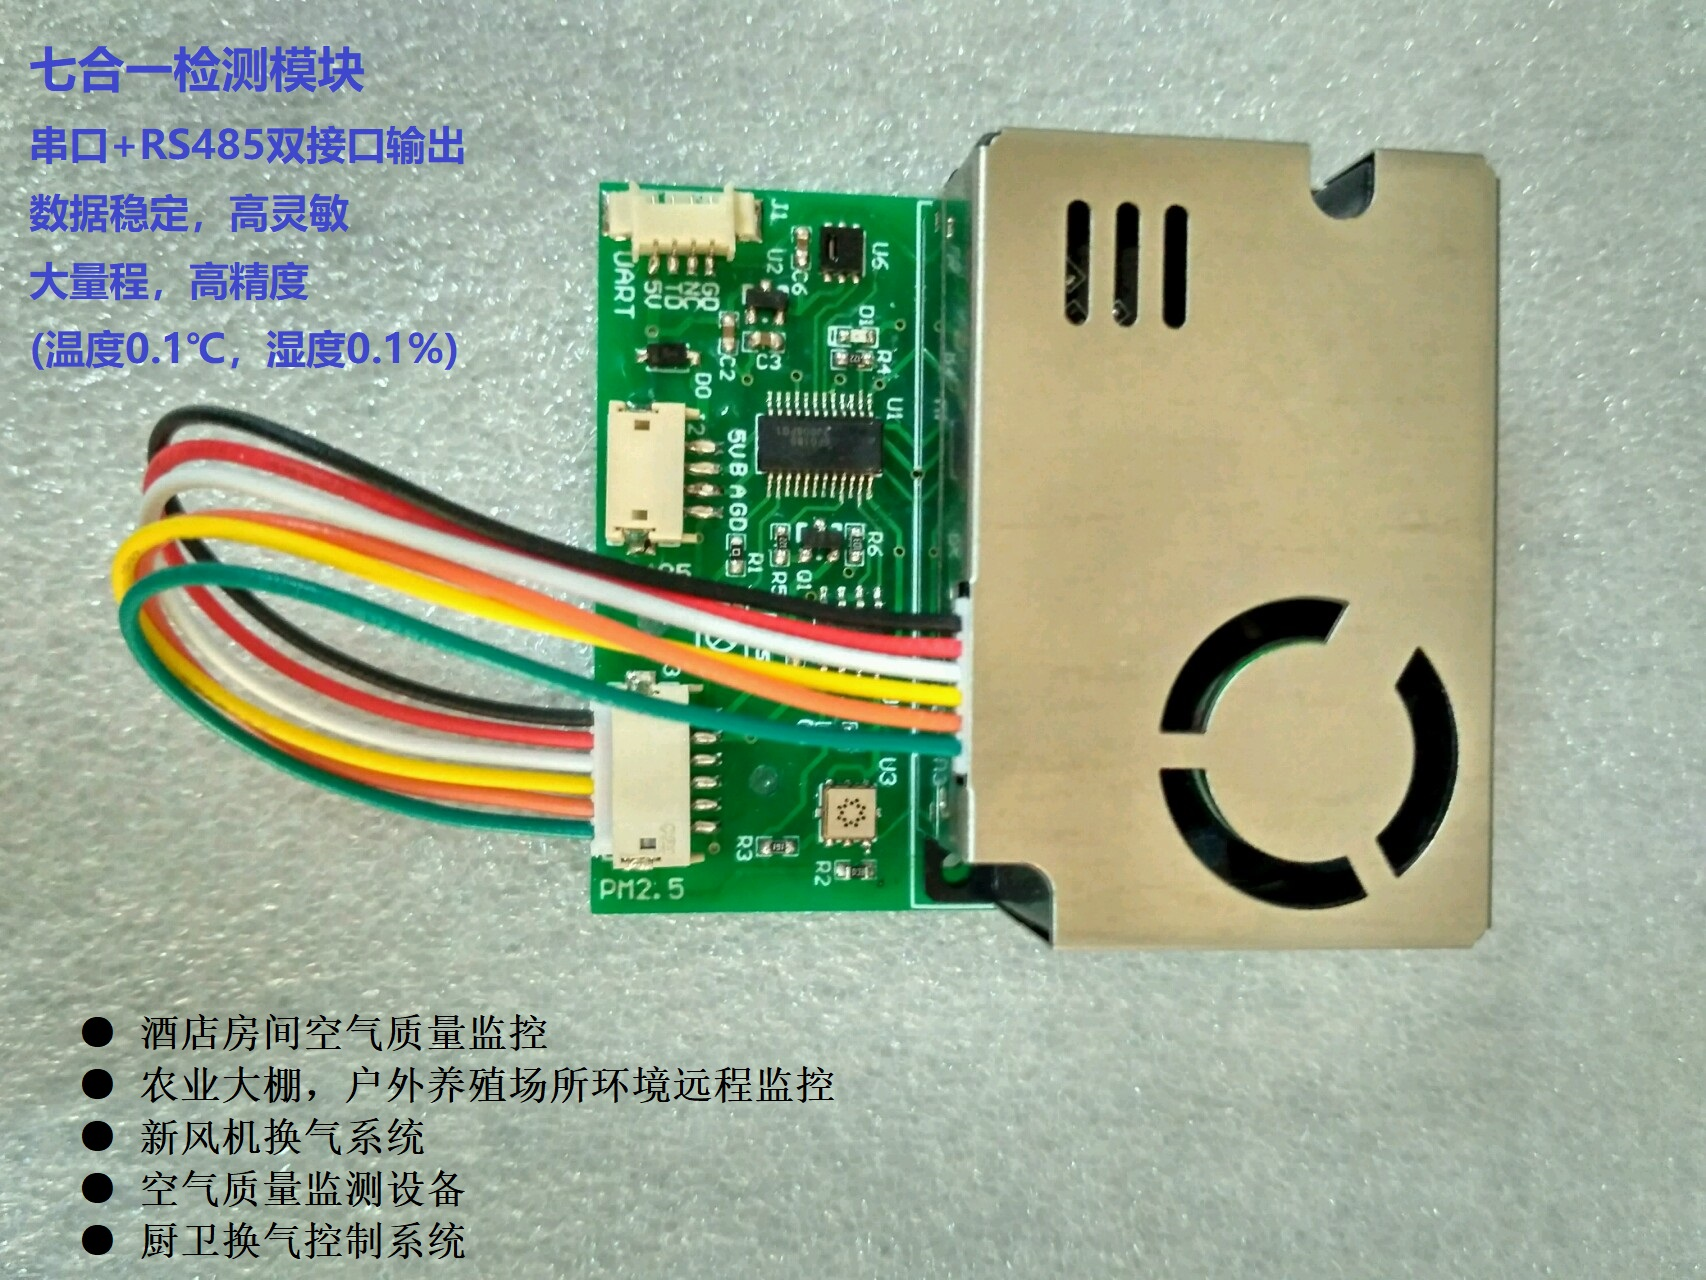 цена Detector 7 in One Sensor Module Detects PM2.5 PM10 Temperature and Humidity C02 Formaldehyde TVOC